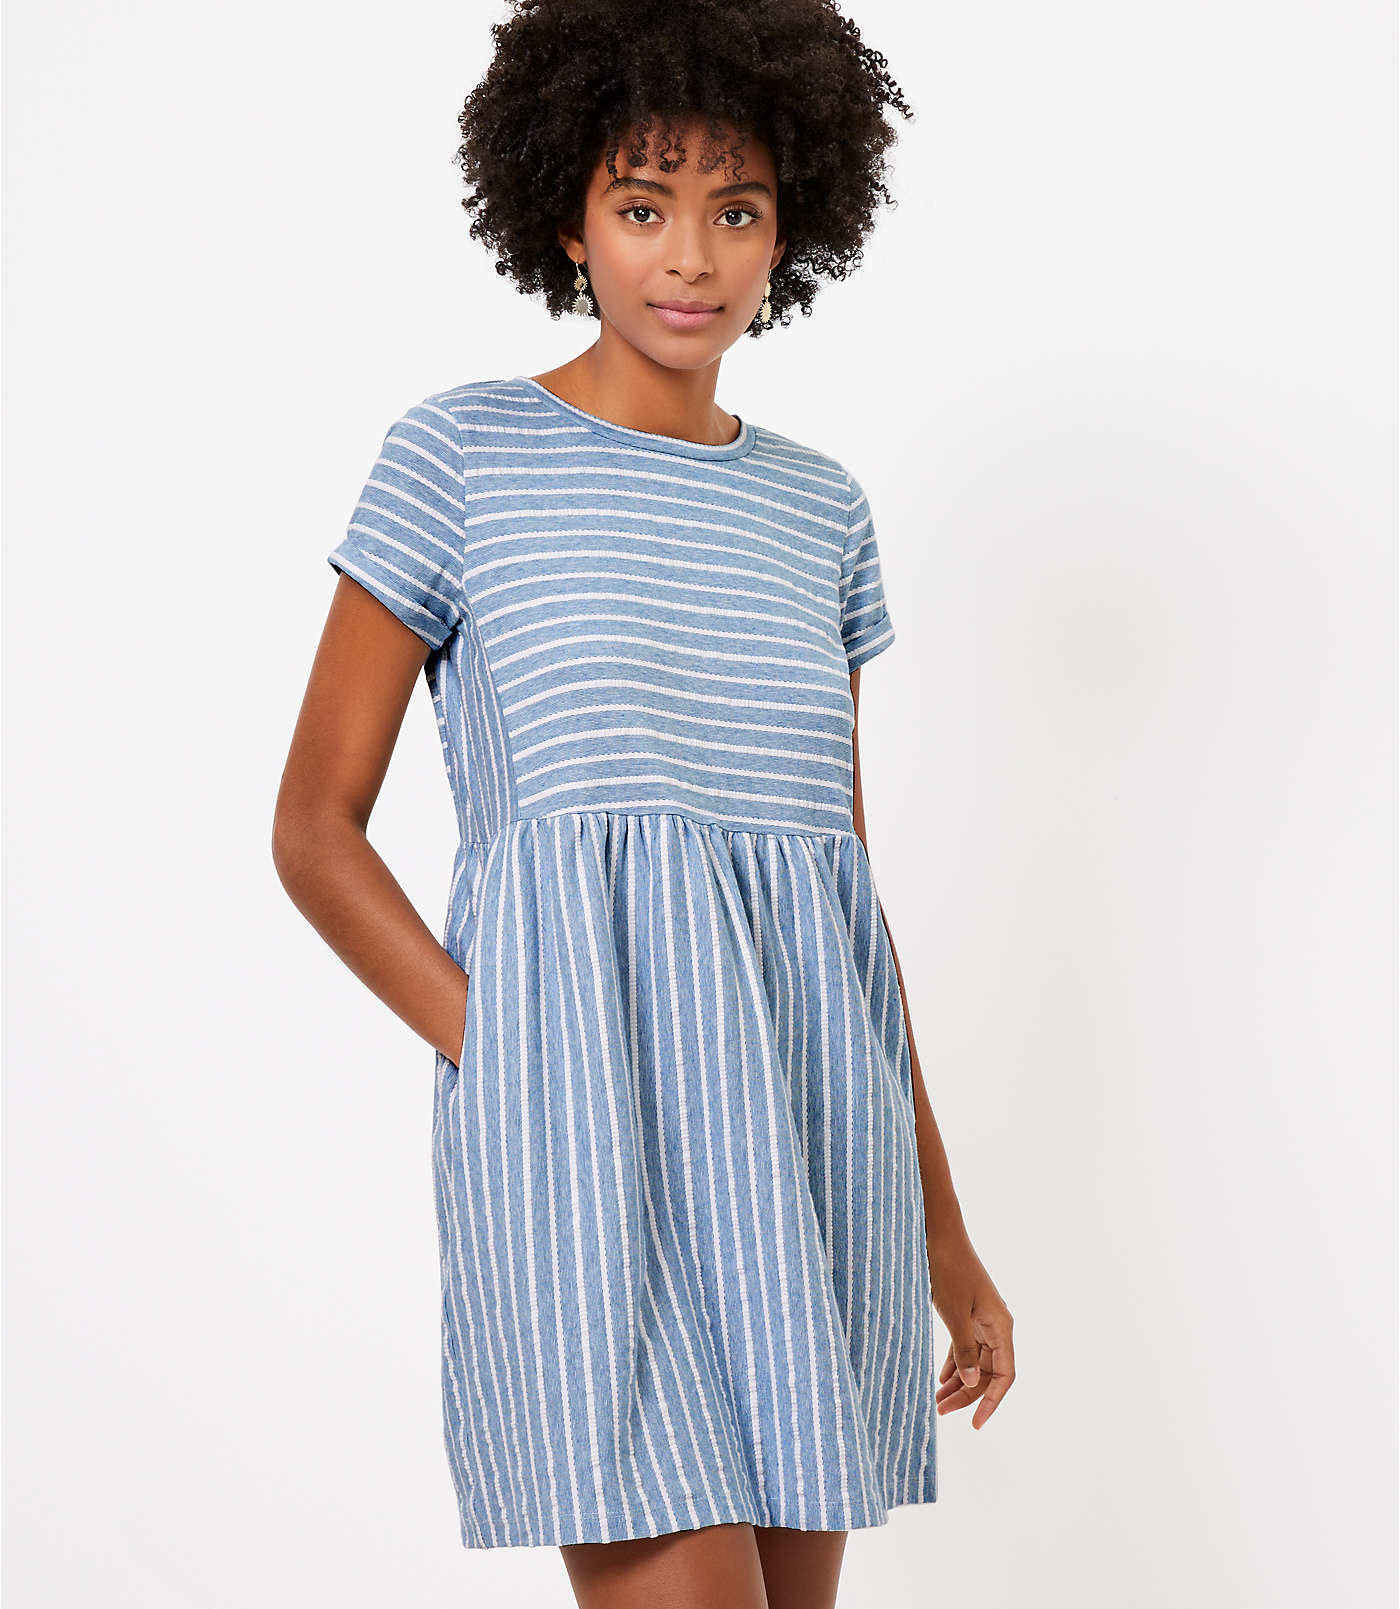 model wearing blue and white striped dress